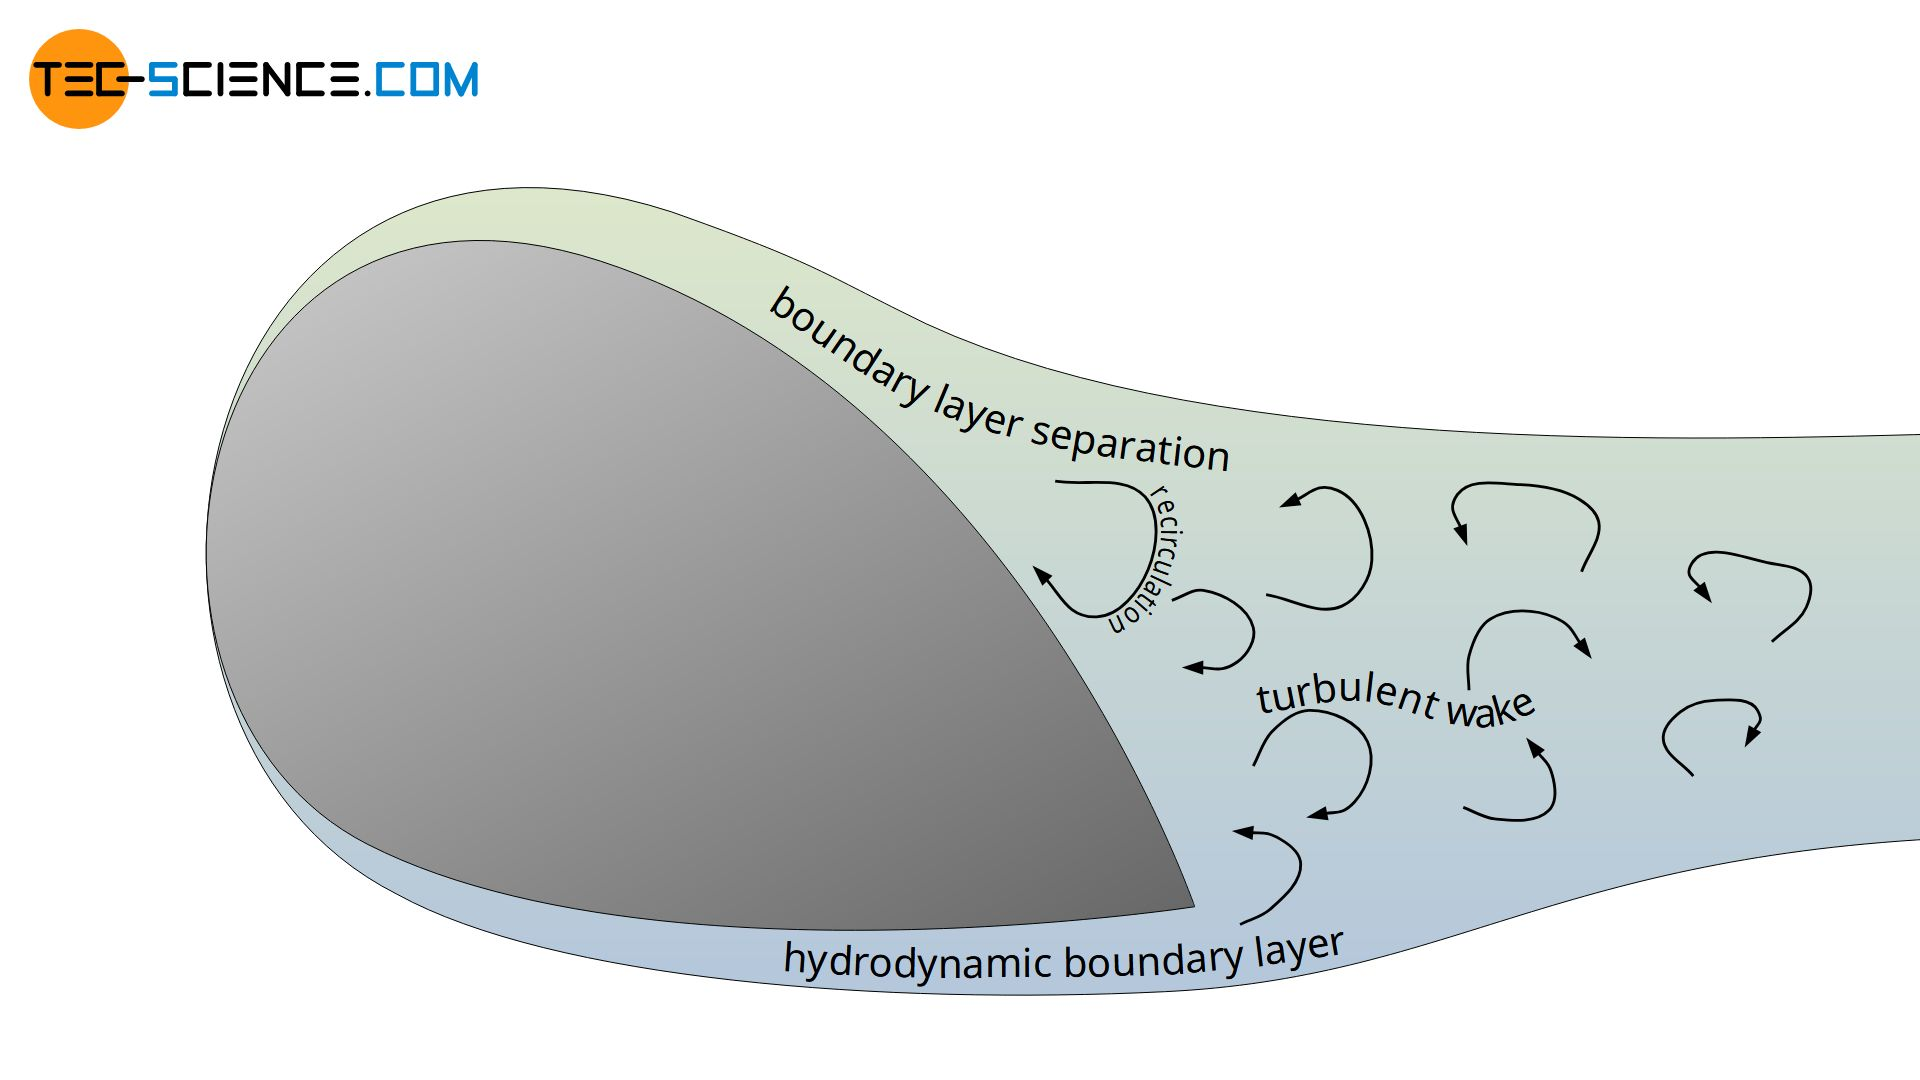 Boundary layer separation (flow separation) on a blunt body